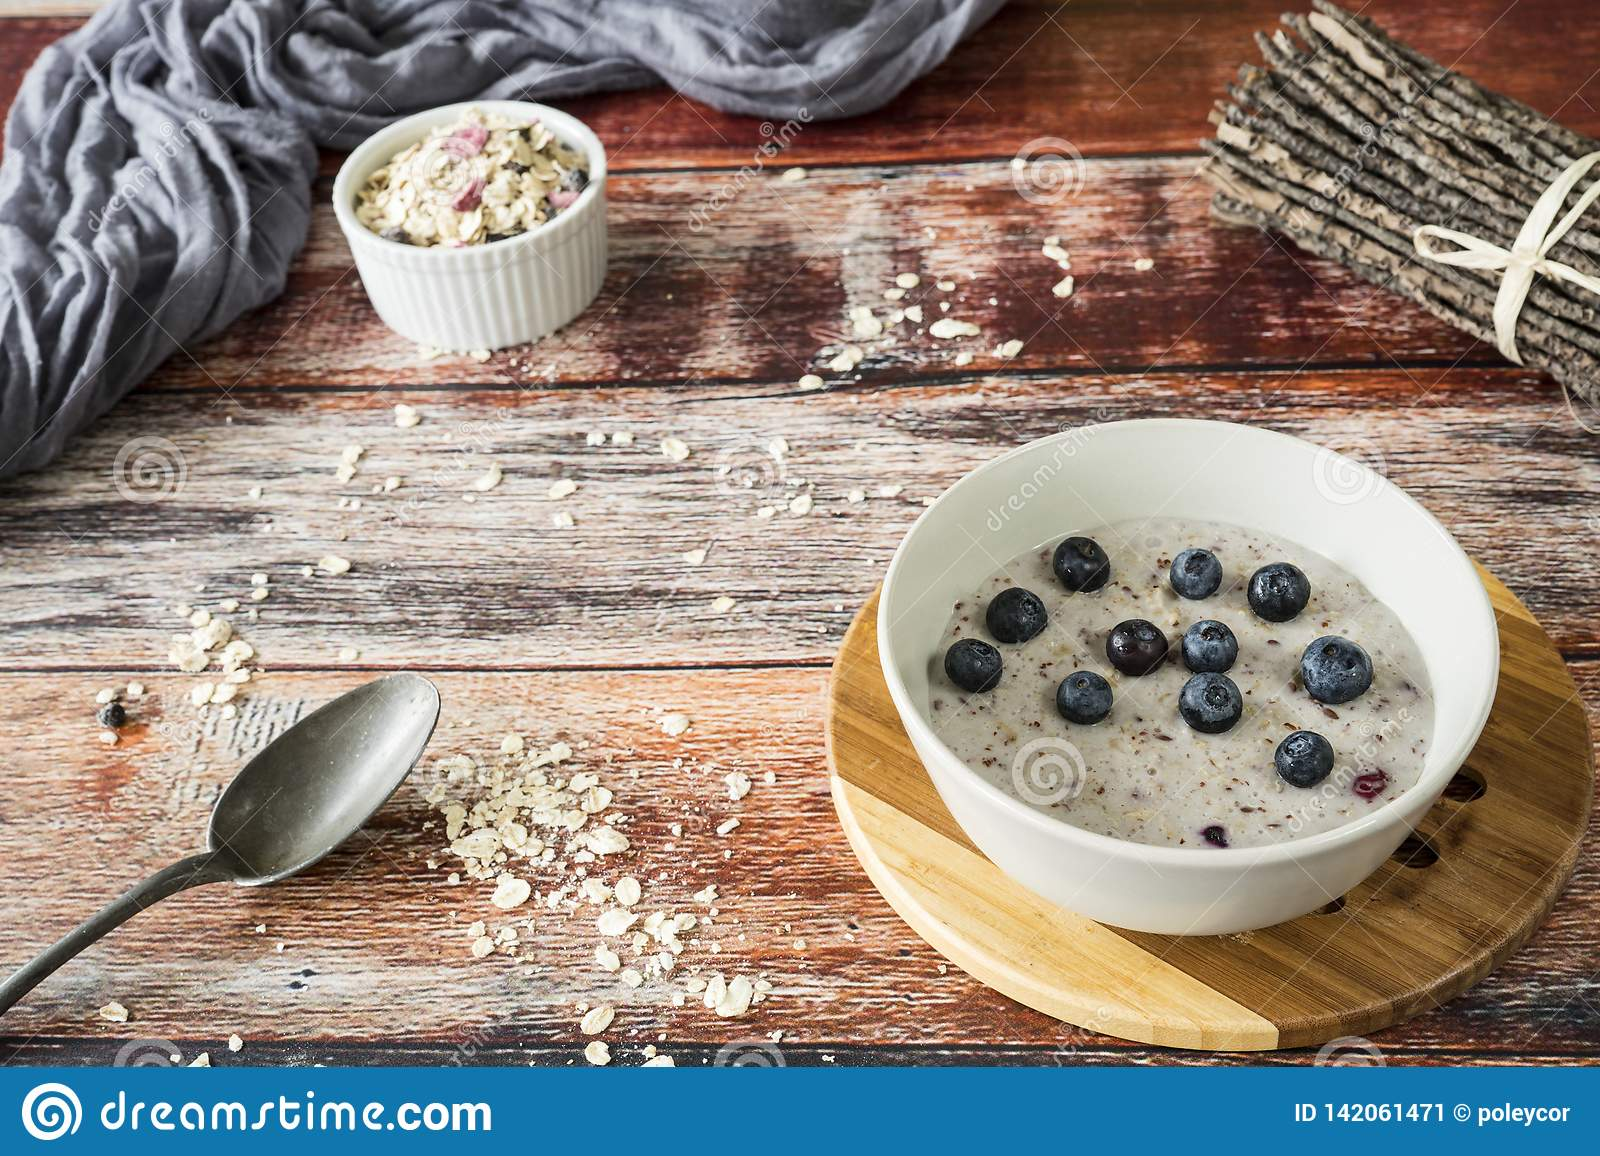 Healthy breakfeast with oats, quinoa, blueberries, on wooden table